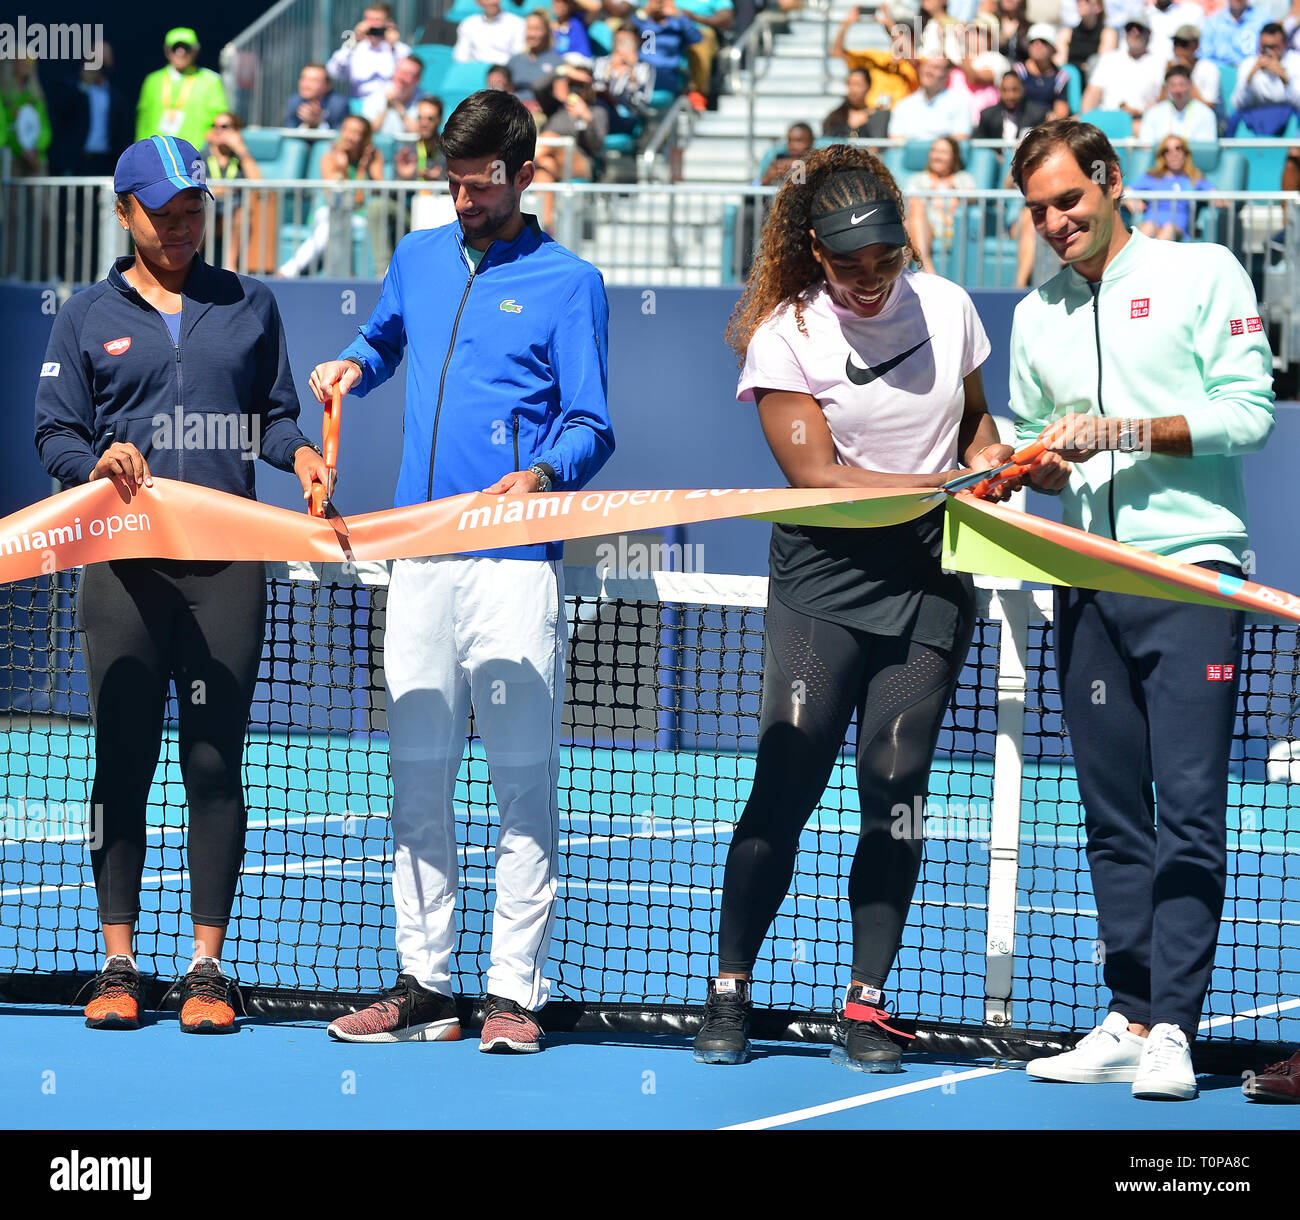 Miami Gardens, Florida, USA. 20th Mar, 2019. Naomi Osaka of Japan, Novak Djokovic of Serbia, Serena Williams of the United States and Roger Federer of Switzerland during the ribbon cutting ceremony before the first match of the Miami Open Day3 at Hard Rock Stadium on March 20, 2019 in Miami Gardens, Florida. Credit: Mpi10/Media Punch/Alamy Live News - Stock Image